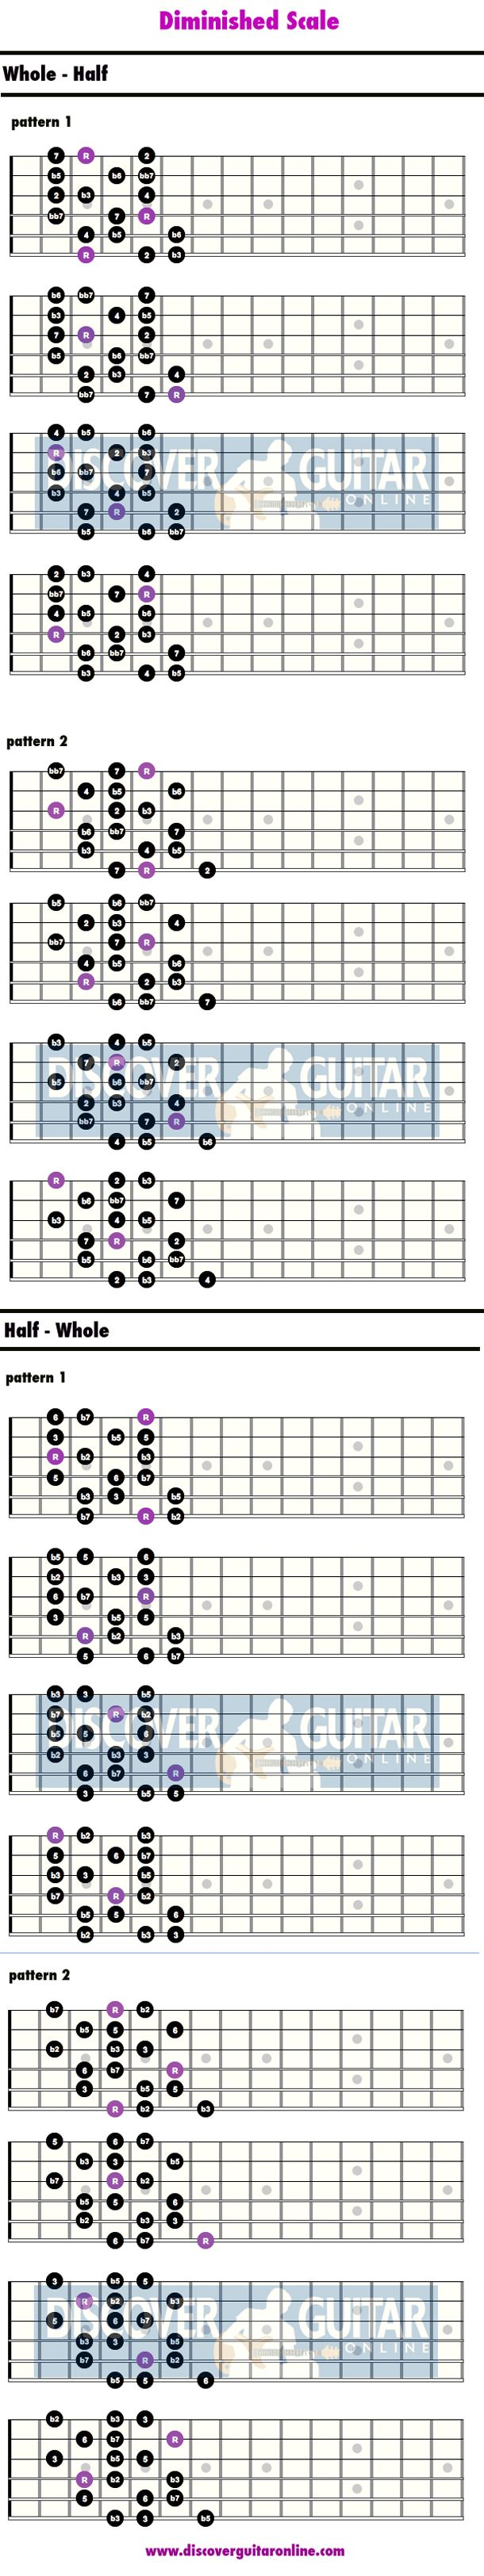 Diminished Scale | Discover Guitar Online, Learn to Play Guitar